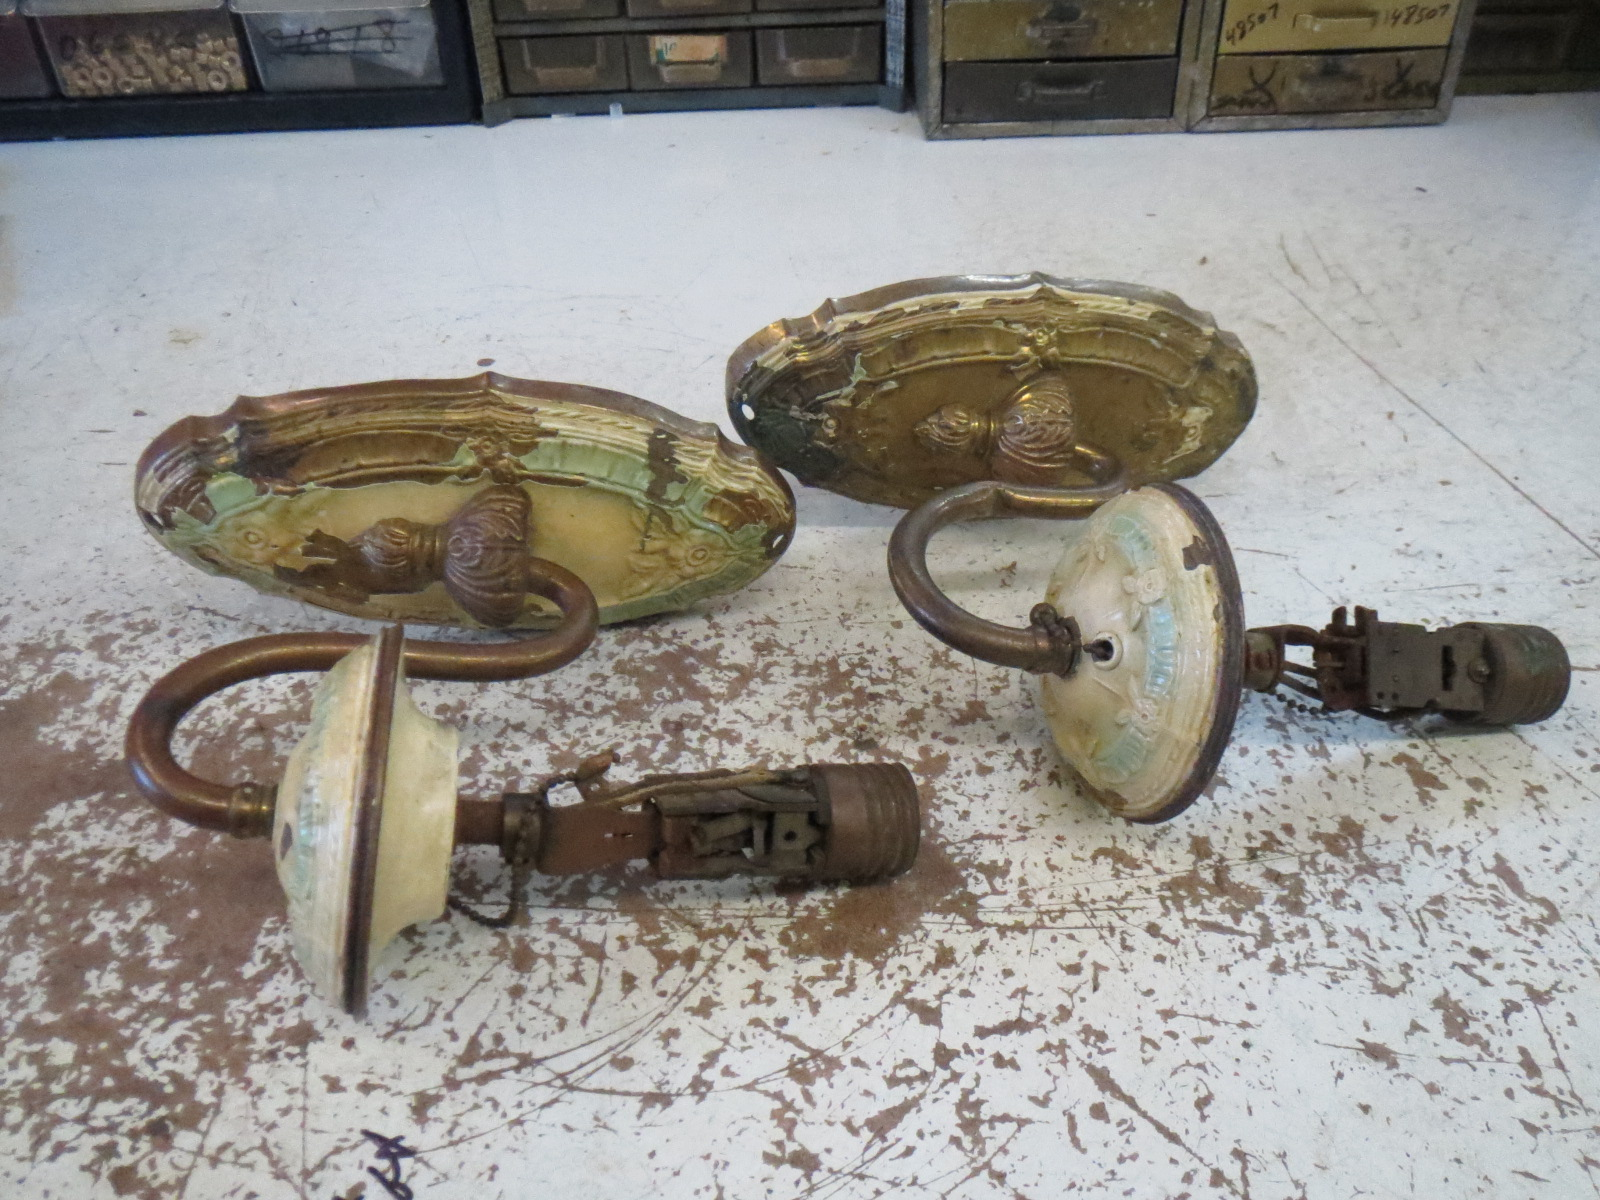 Lamp Parts and Repair | Lamp Doctor: Repaired Antique Wall ... on Wall Sconce Parts id=37625